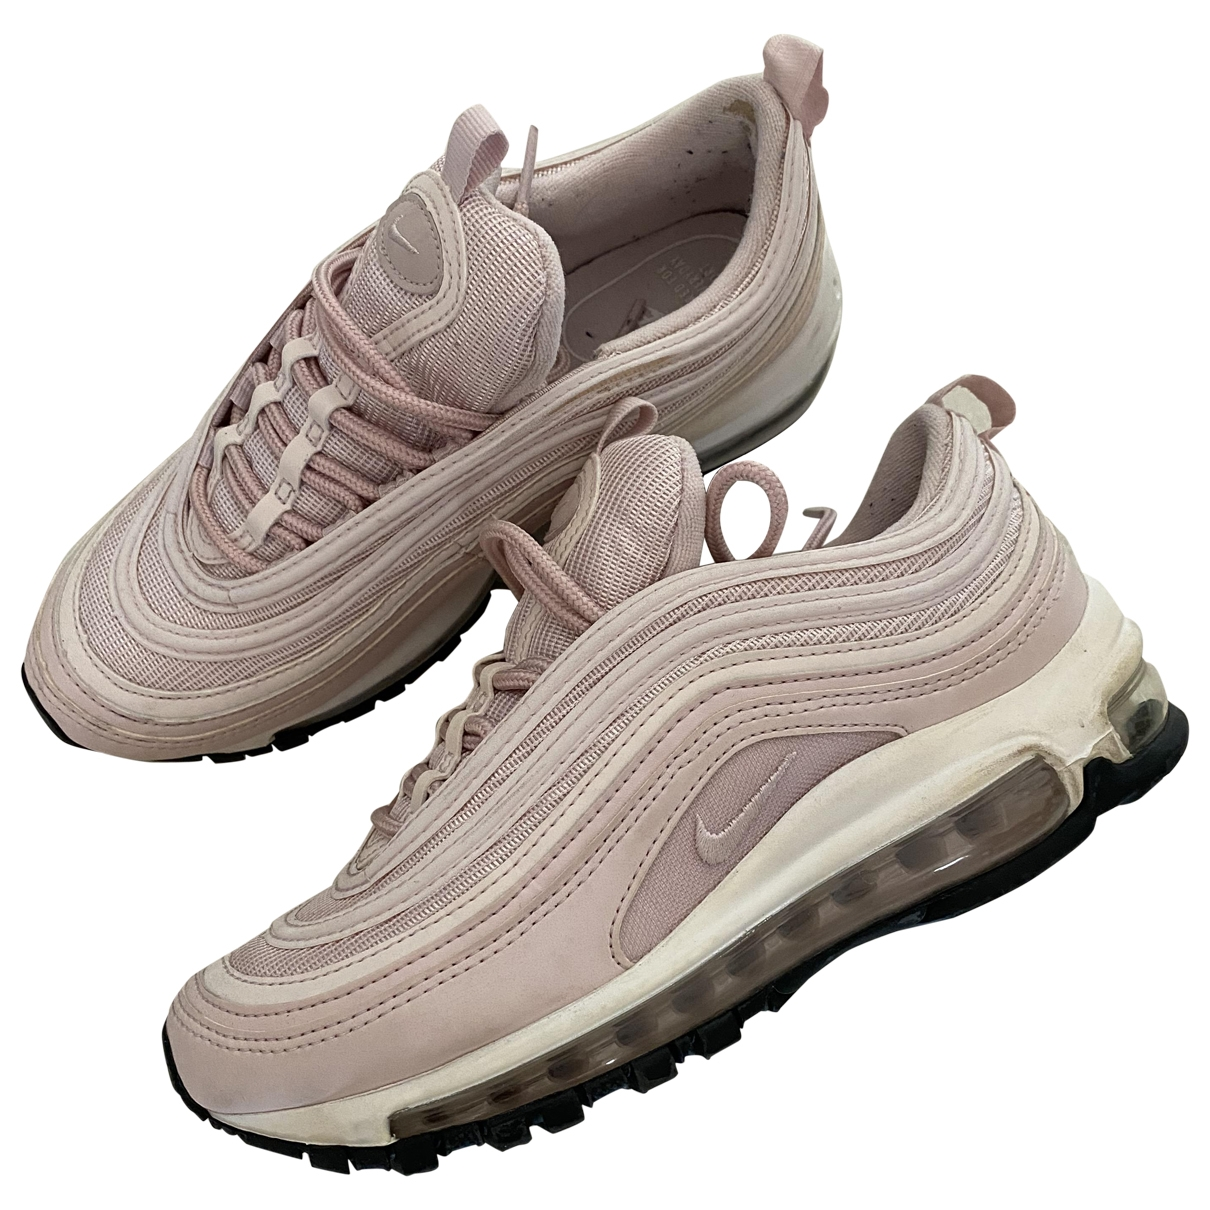 Nike Air Max 97 Pink Rubber Trainers for Women 36.5 EU